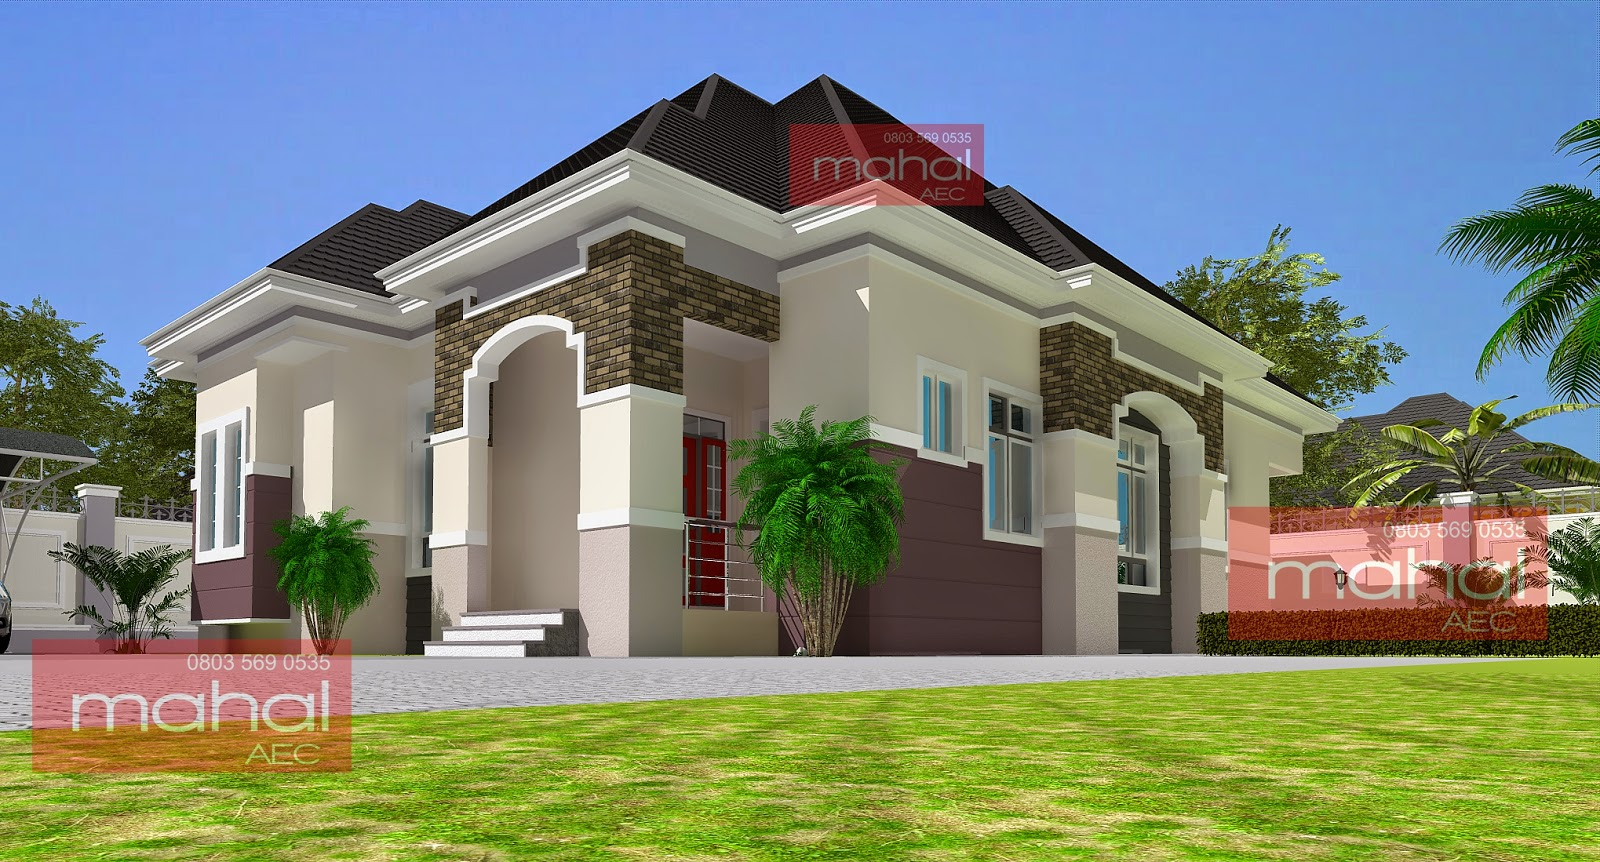 Contemporary nigerian residential architecture 3 bedroom for Modern house designs in nigeria